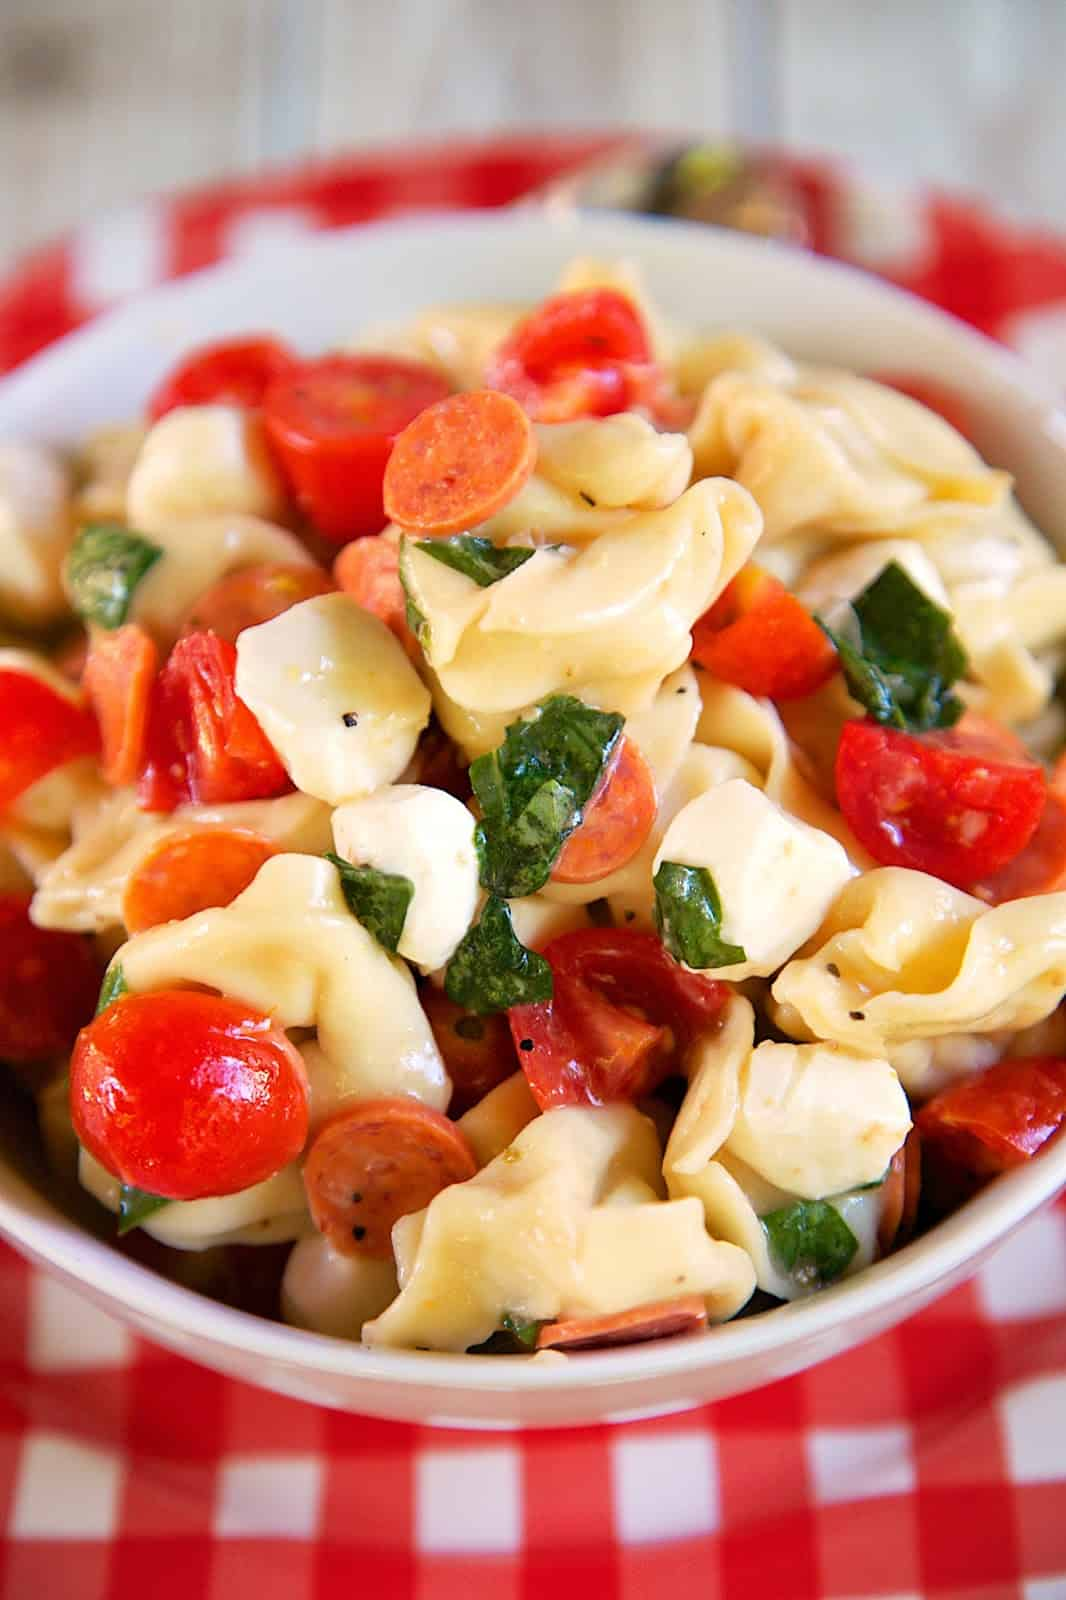 Tortellini and Pepperoni Pasta Salad Recipe - I am not a fan of mayonnaise, so I am always looking for non-mayonnaise pasta salad recipes. A friend sent me this recipe and it sounded right up my alley. It has cheese tortellini, pepperoni, basil, fresh mozzarella, tomatoes and caesar dressing. All of my favorites! Can make ahead of time and refrigerate.